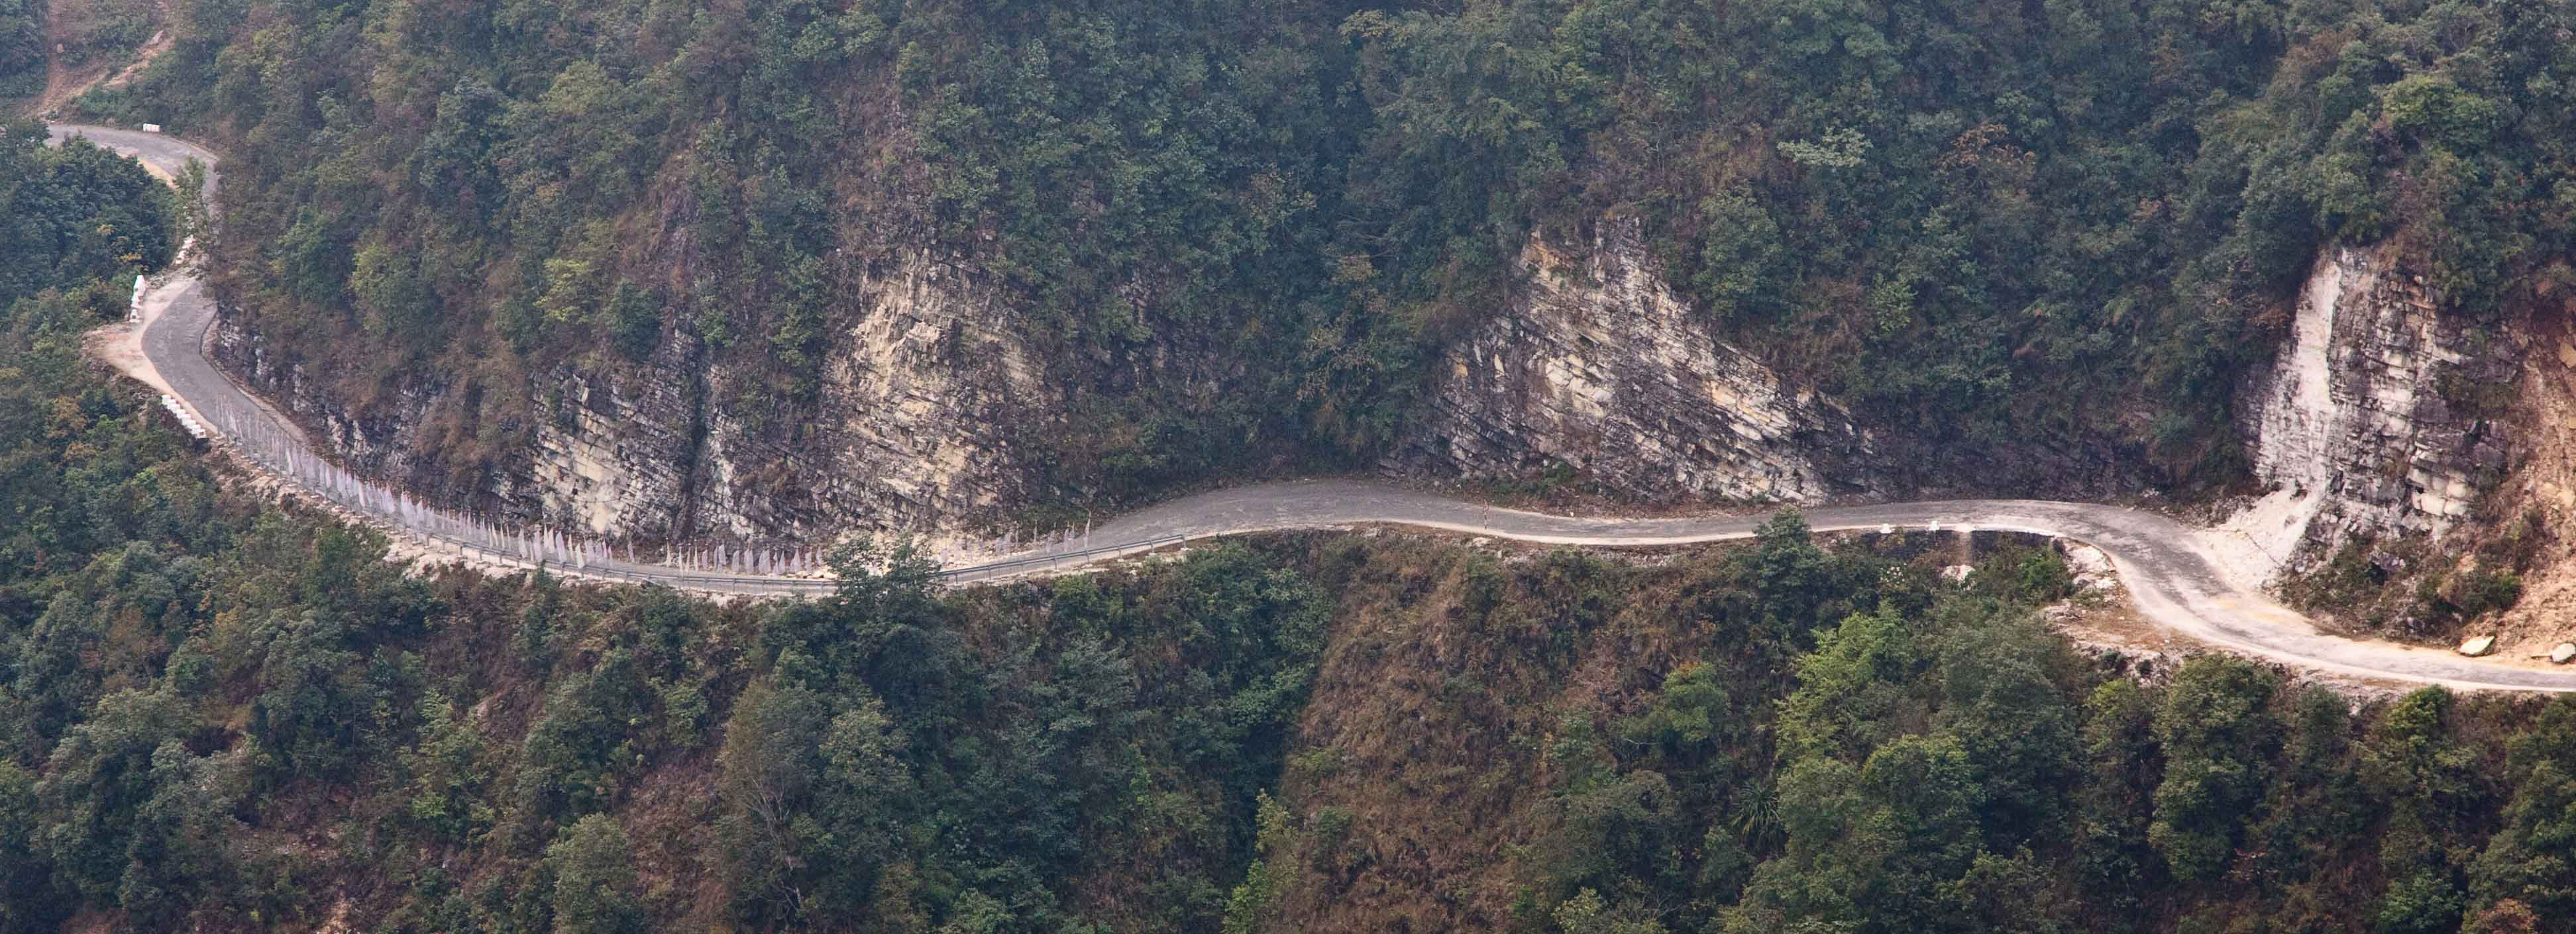 The rugged roads of Bhutan